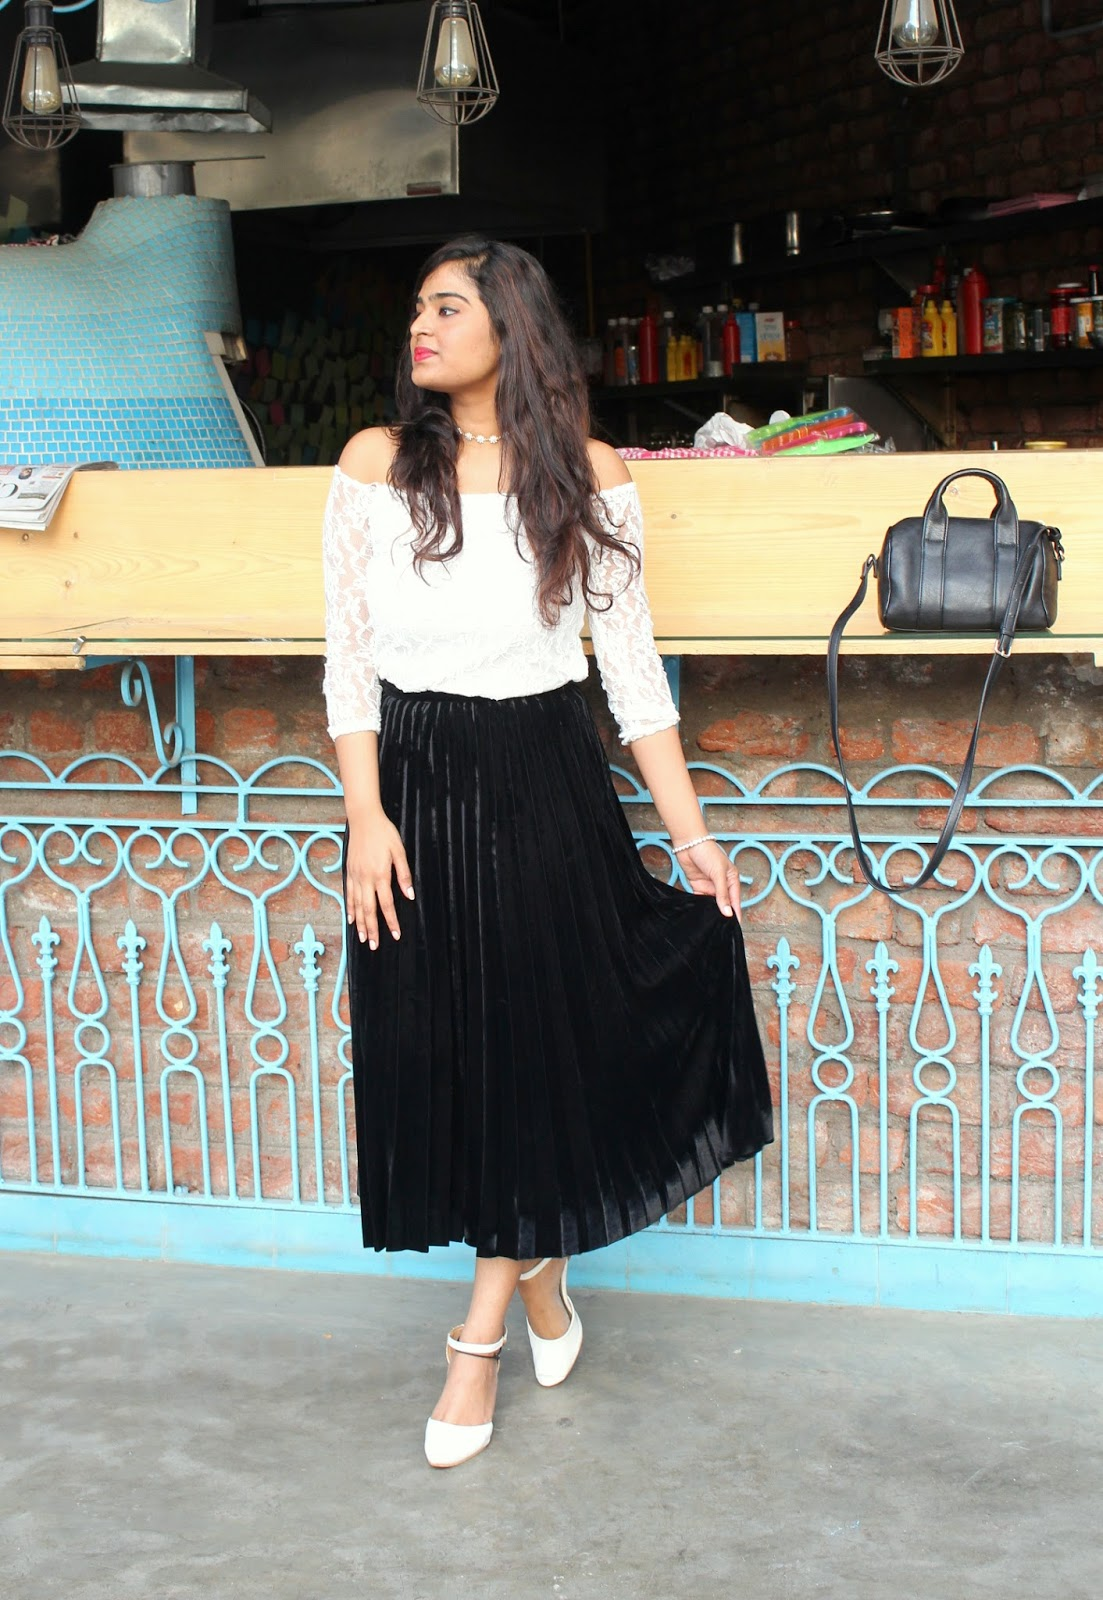 I Got This Skirt From Zara.It Is A Pleated Velvet Black Skirt. I Love  Pleats And Velvet, So I Just Had To Buy This One:D Also I Got This One On  Flat ...